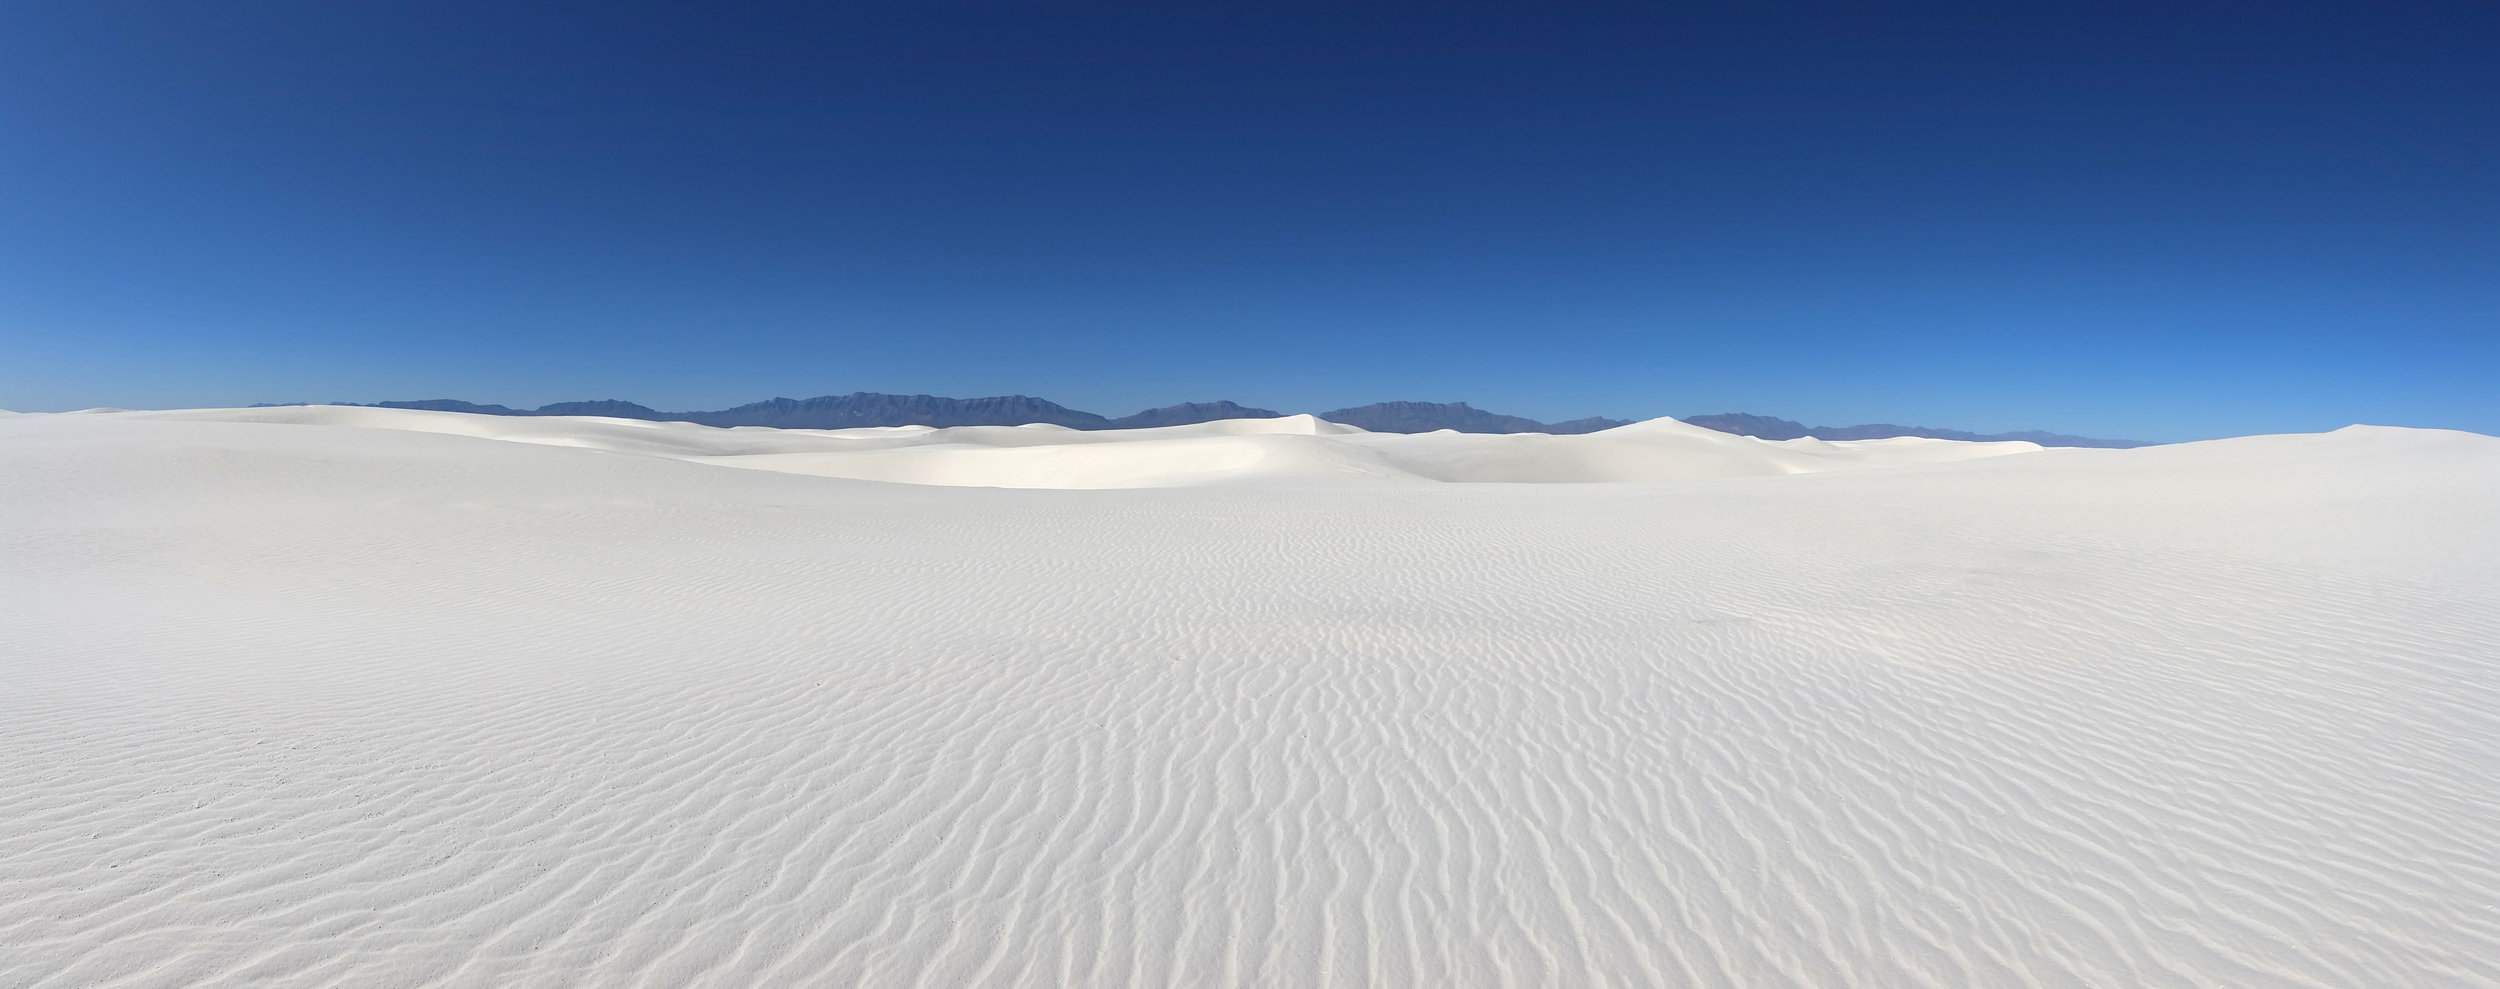 Morning in the heart of the dunes, White Sands National Monument, New Mexico.  Yes...